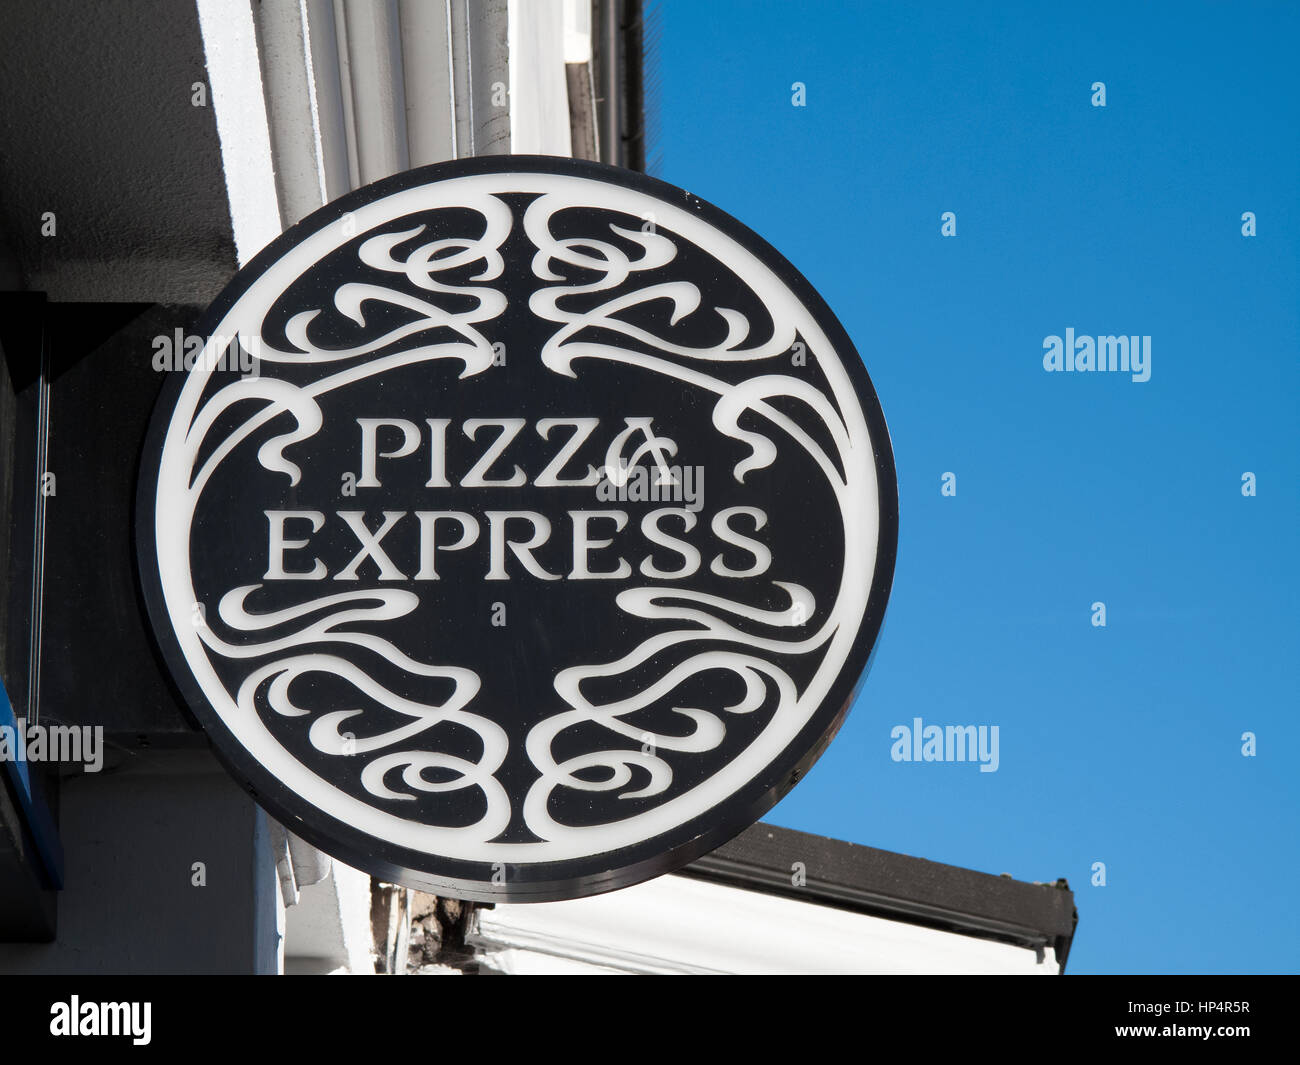 Pizza Express Sign Over Restaurant Founded In 1965 By Peter